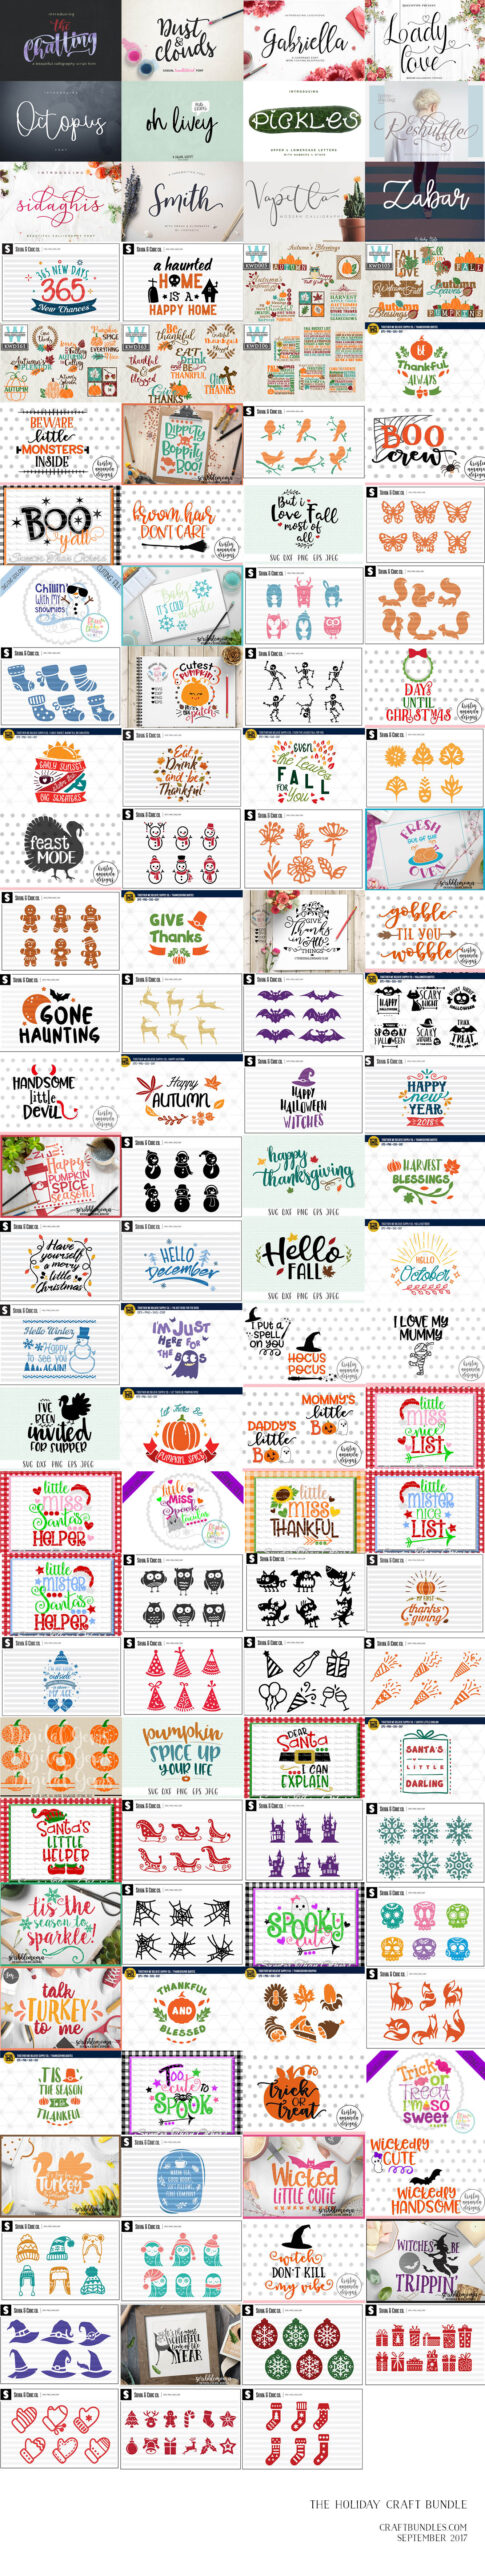 Free SVG Files /// THE HUGE HOLIDAY CRAFT PACK - Free Pretty